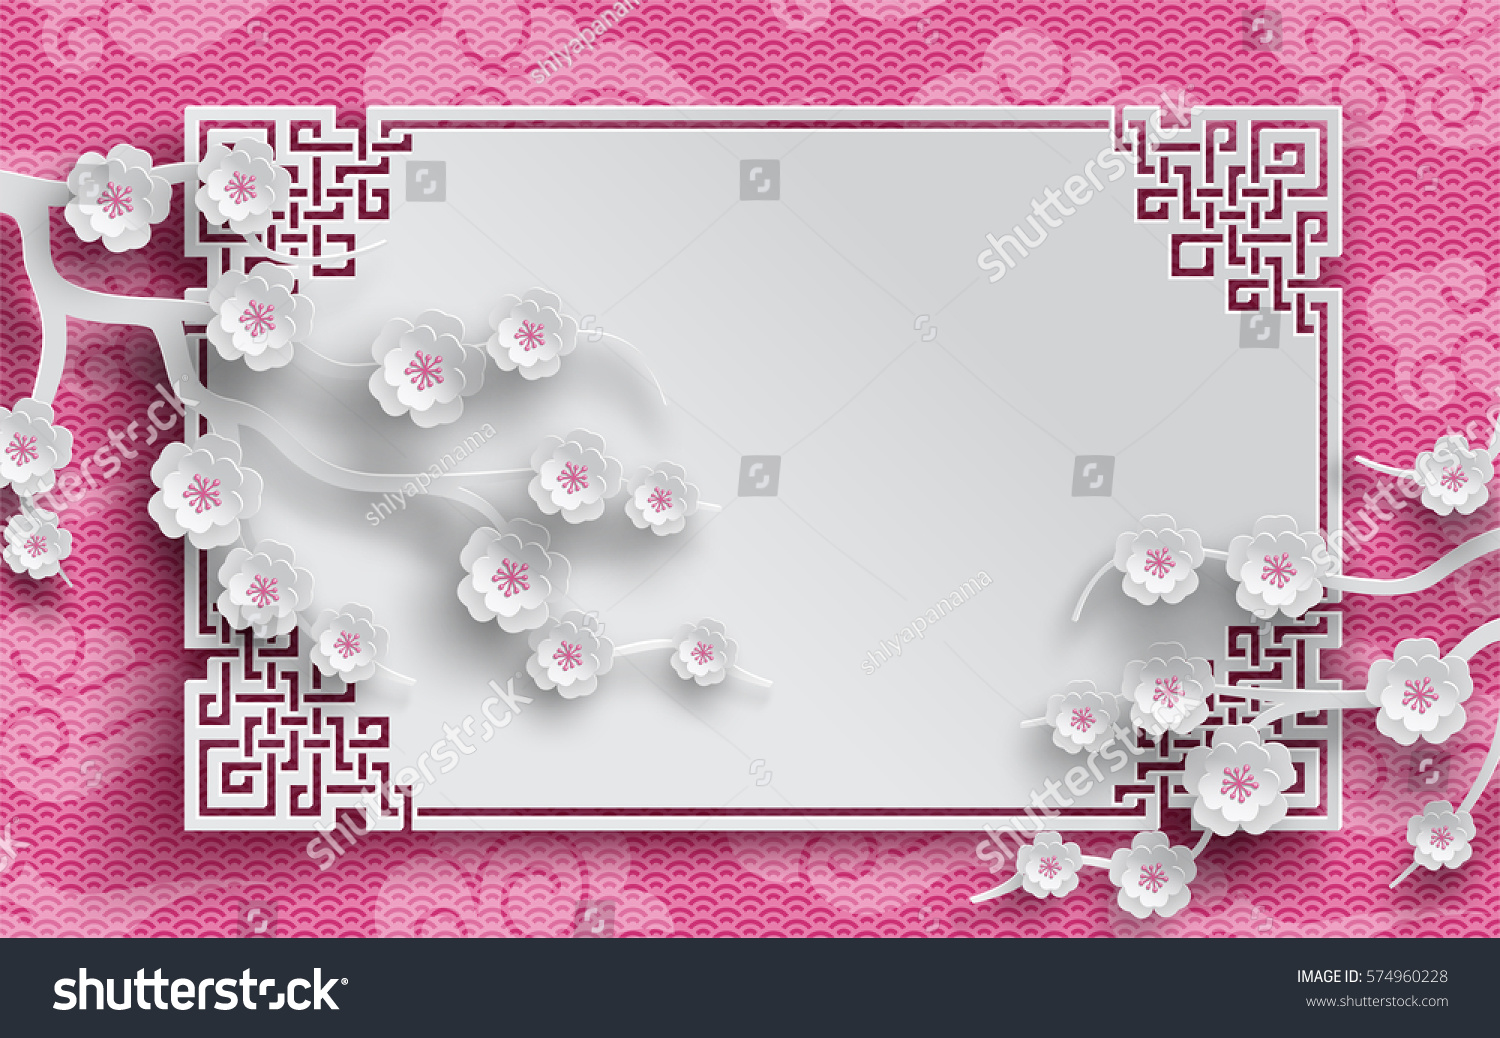 branches of cherry flowers oriental frame on pink japan pattern background for chinese new year